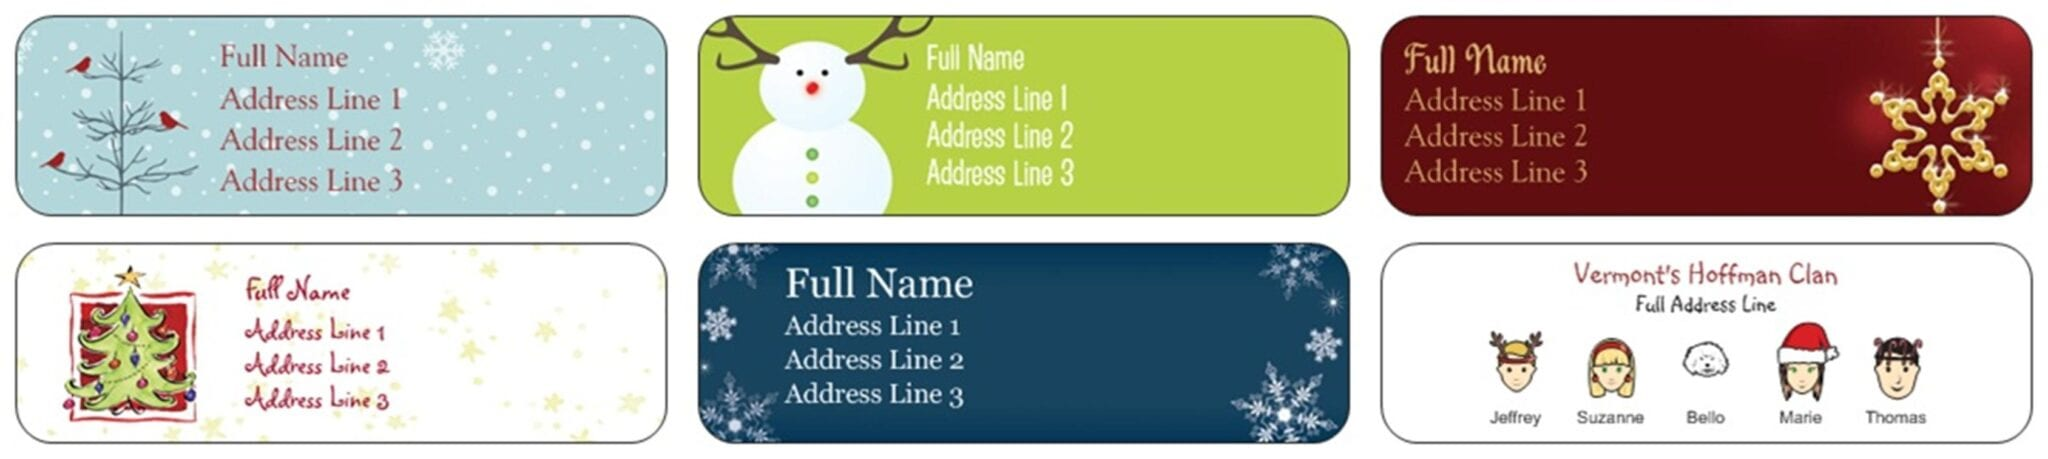 140 return address labels from vistaprint for free just pay